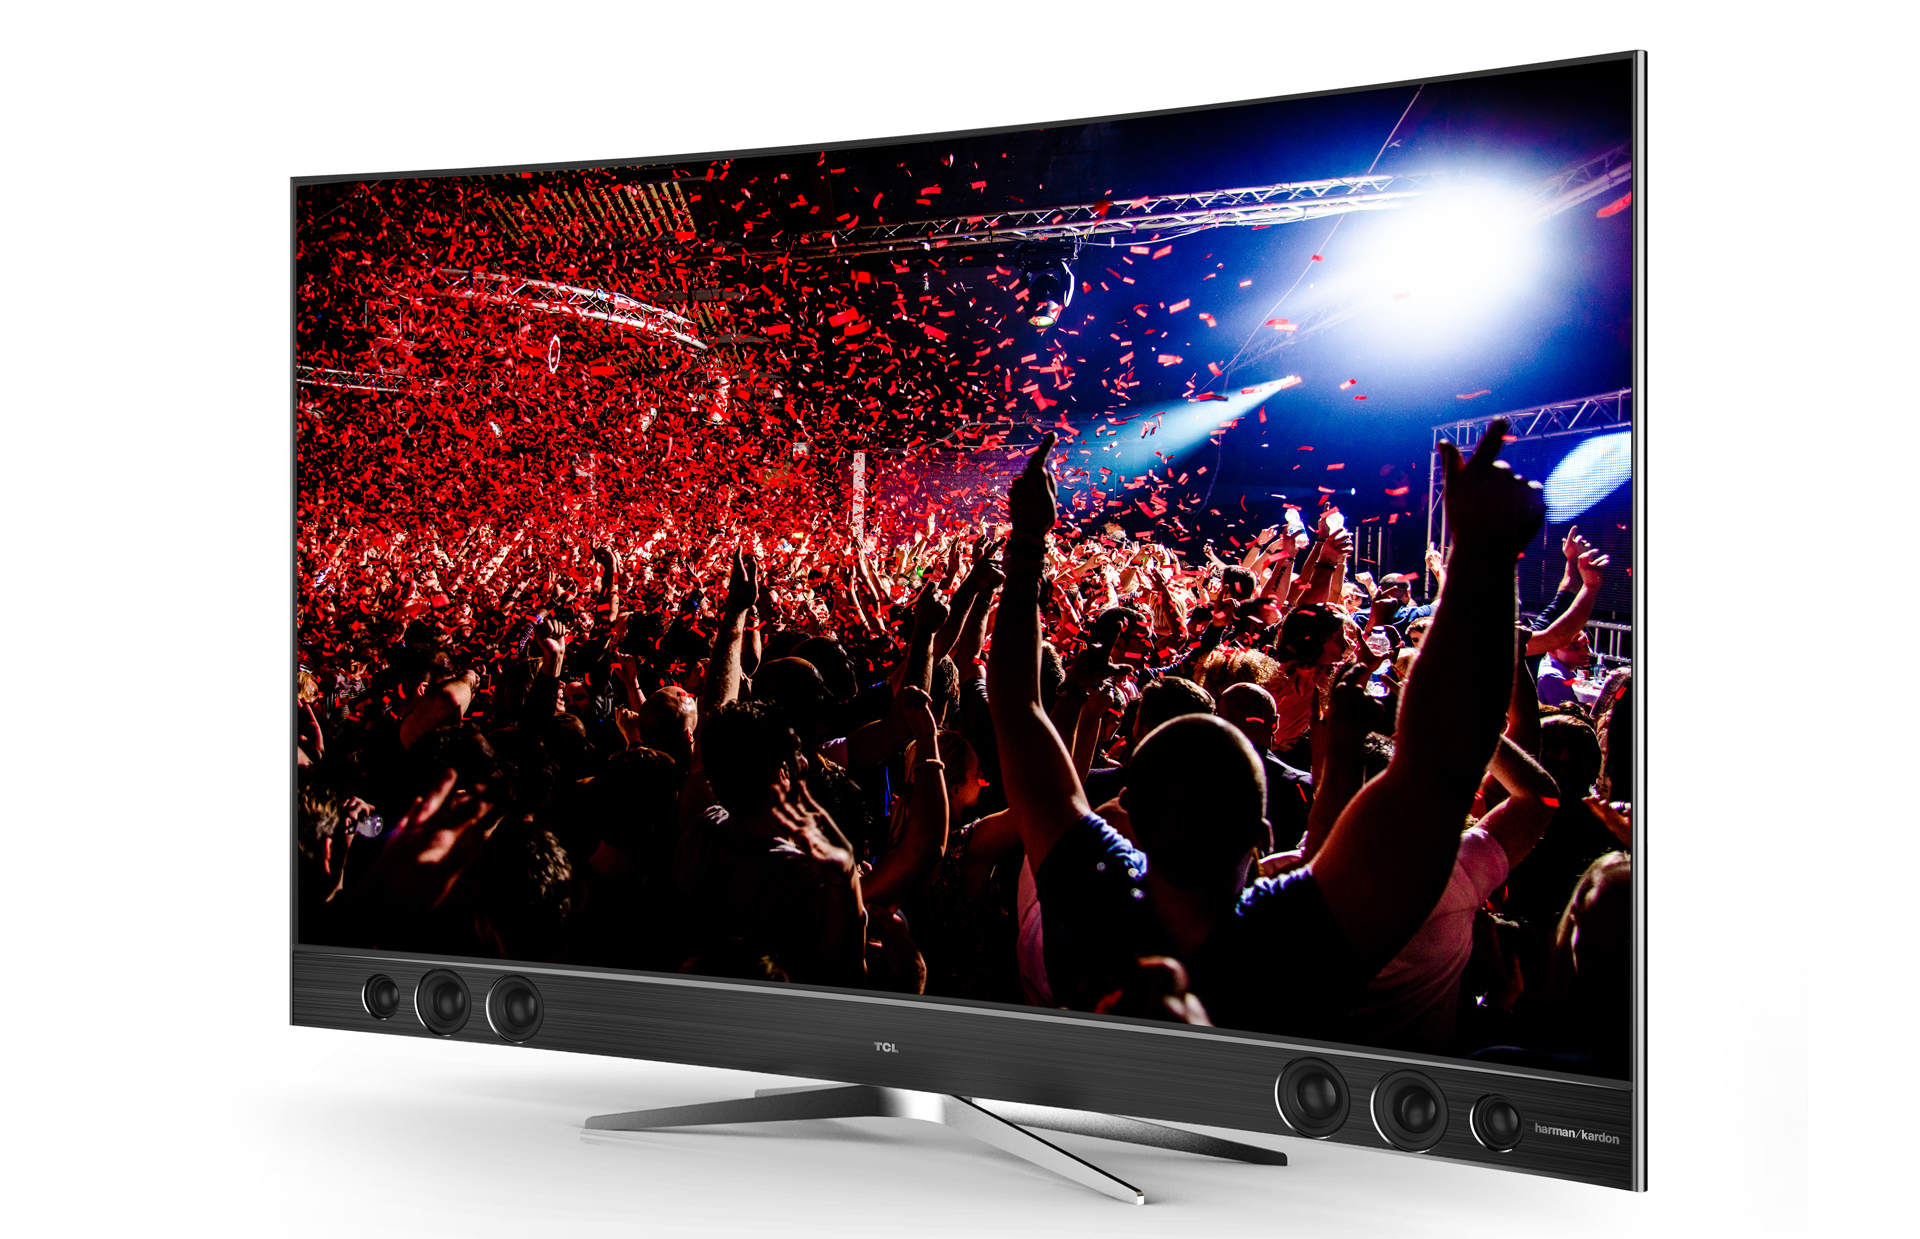 bargain brand tcl launches high end tv with dolby vision hdr zmcommunications. Black Bedroom Furniture Sets. Home Design Ideas